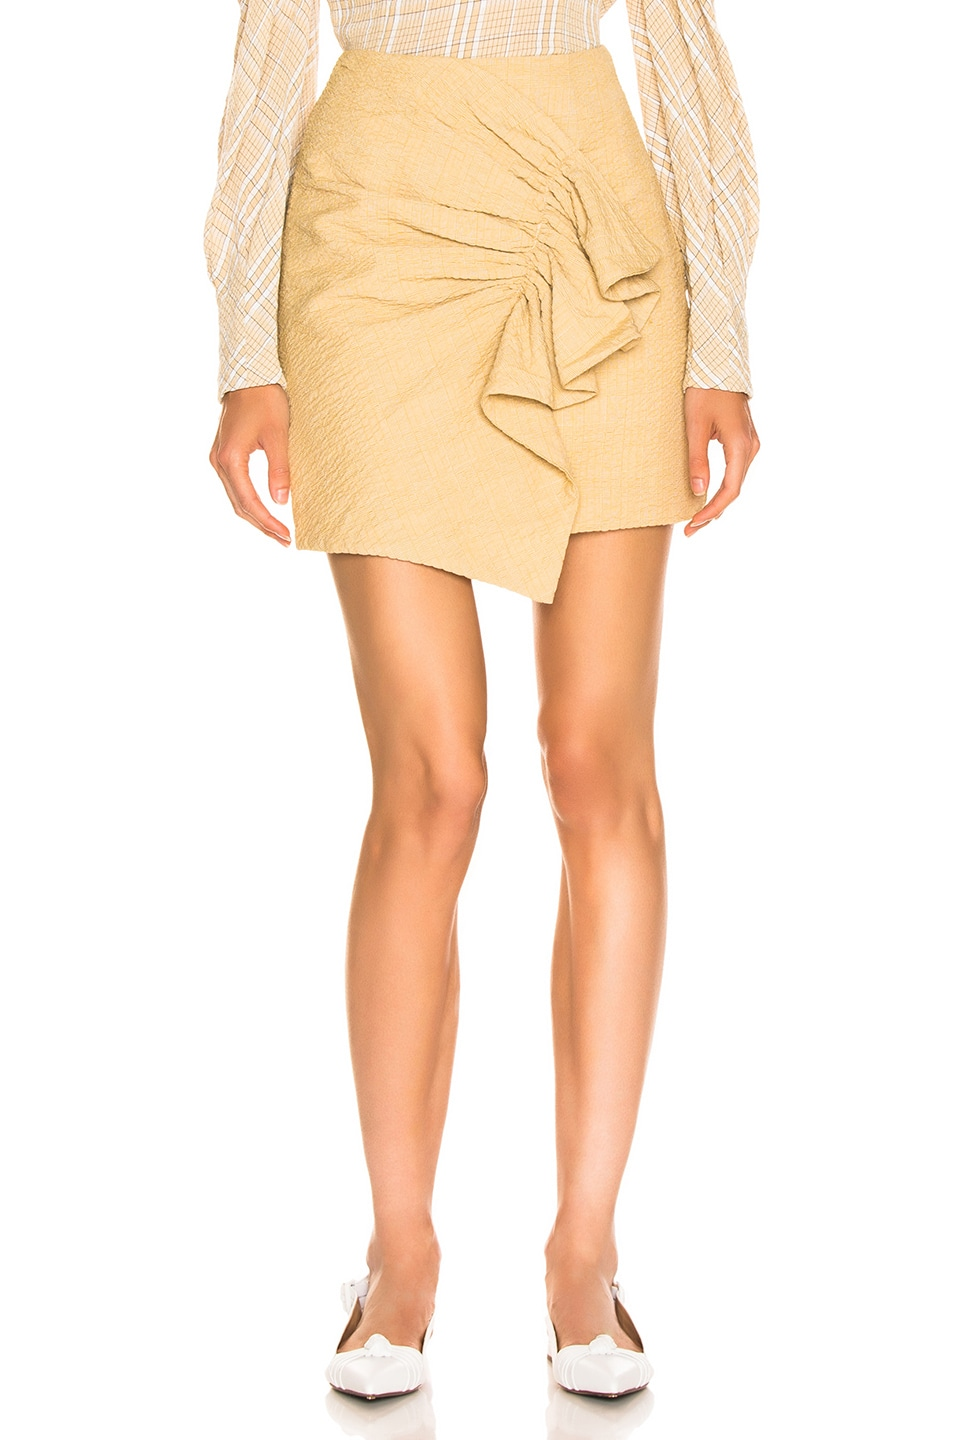 Image 1 of Atoir Golden Years Skirt in Golden Mist